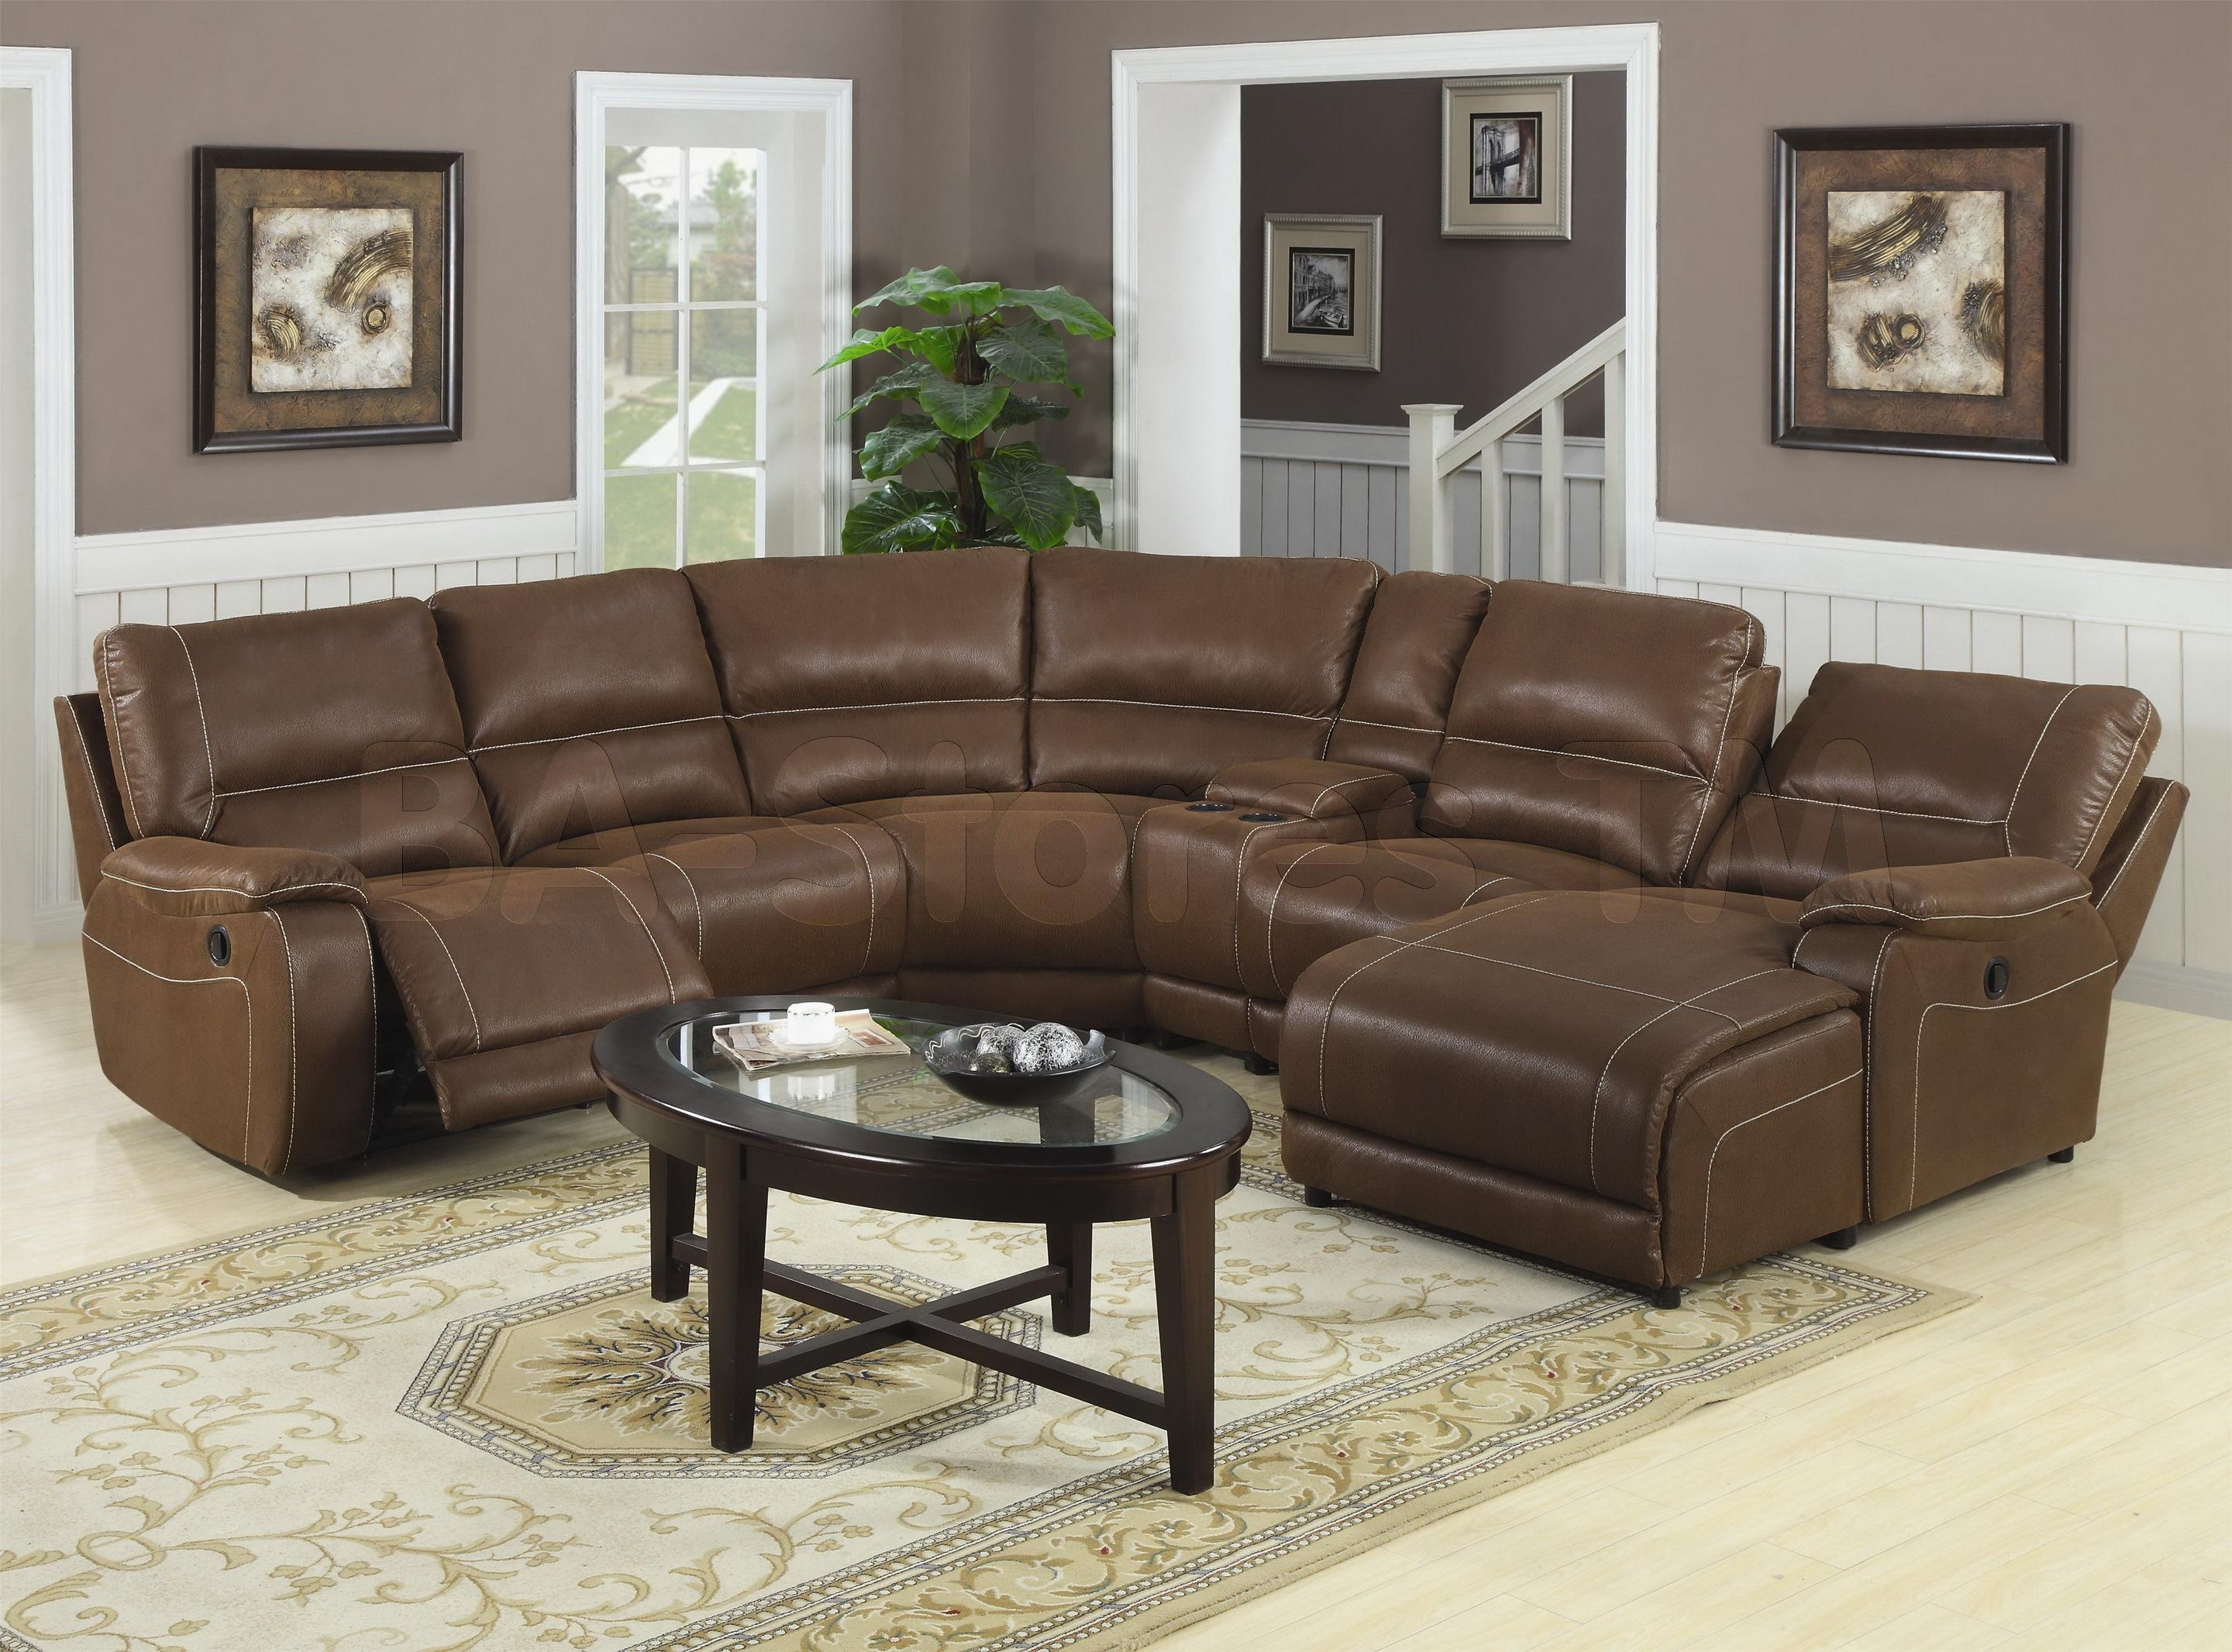 Round Sectional Sofa Leather | Tehranmix Decoration With Regard To Chocolate Brown Sectional With Chaise (Image 12 of 15)